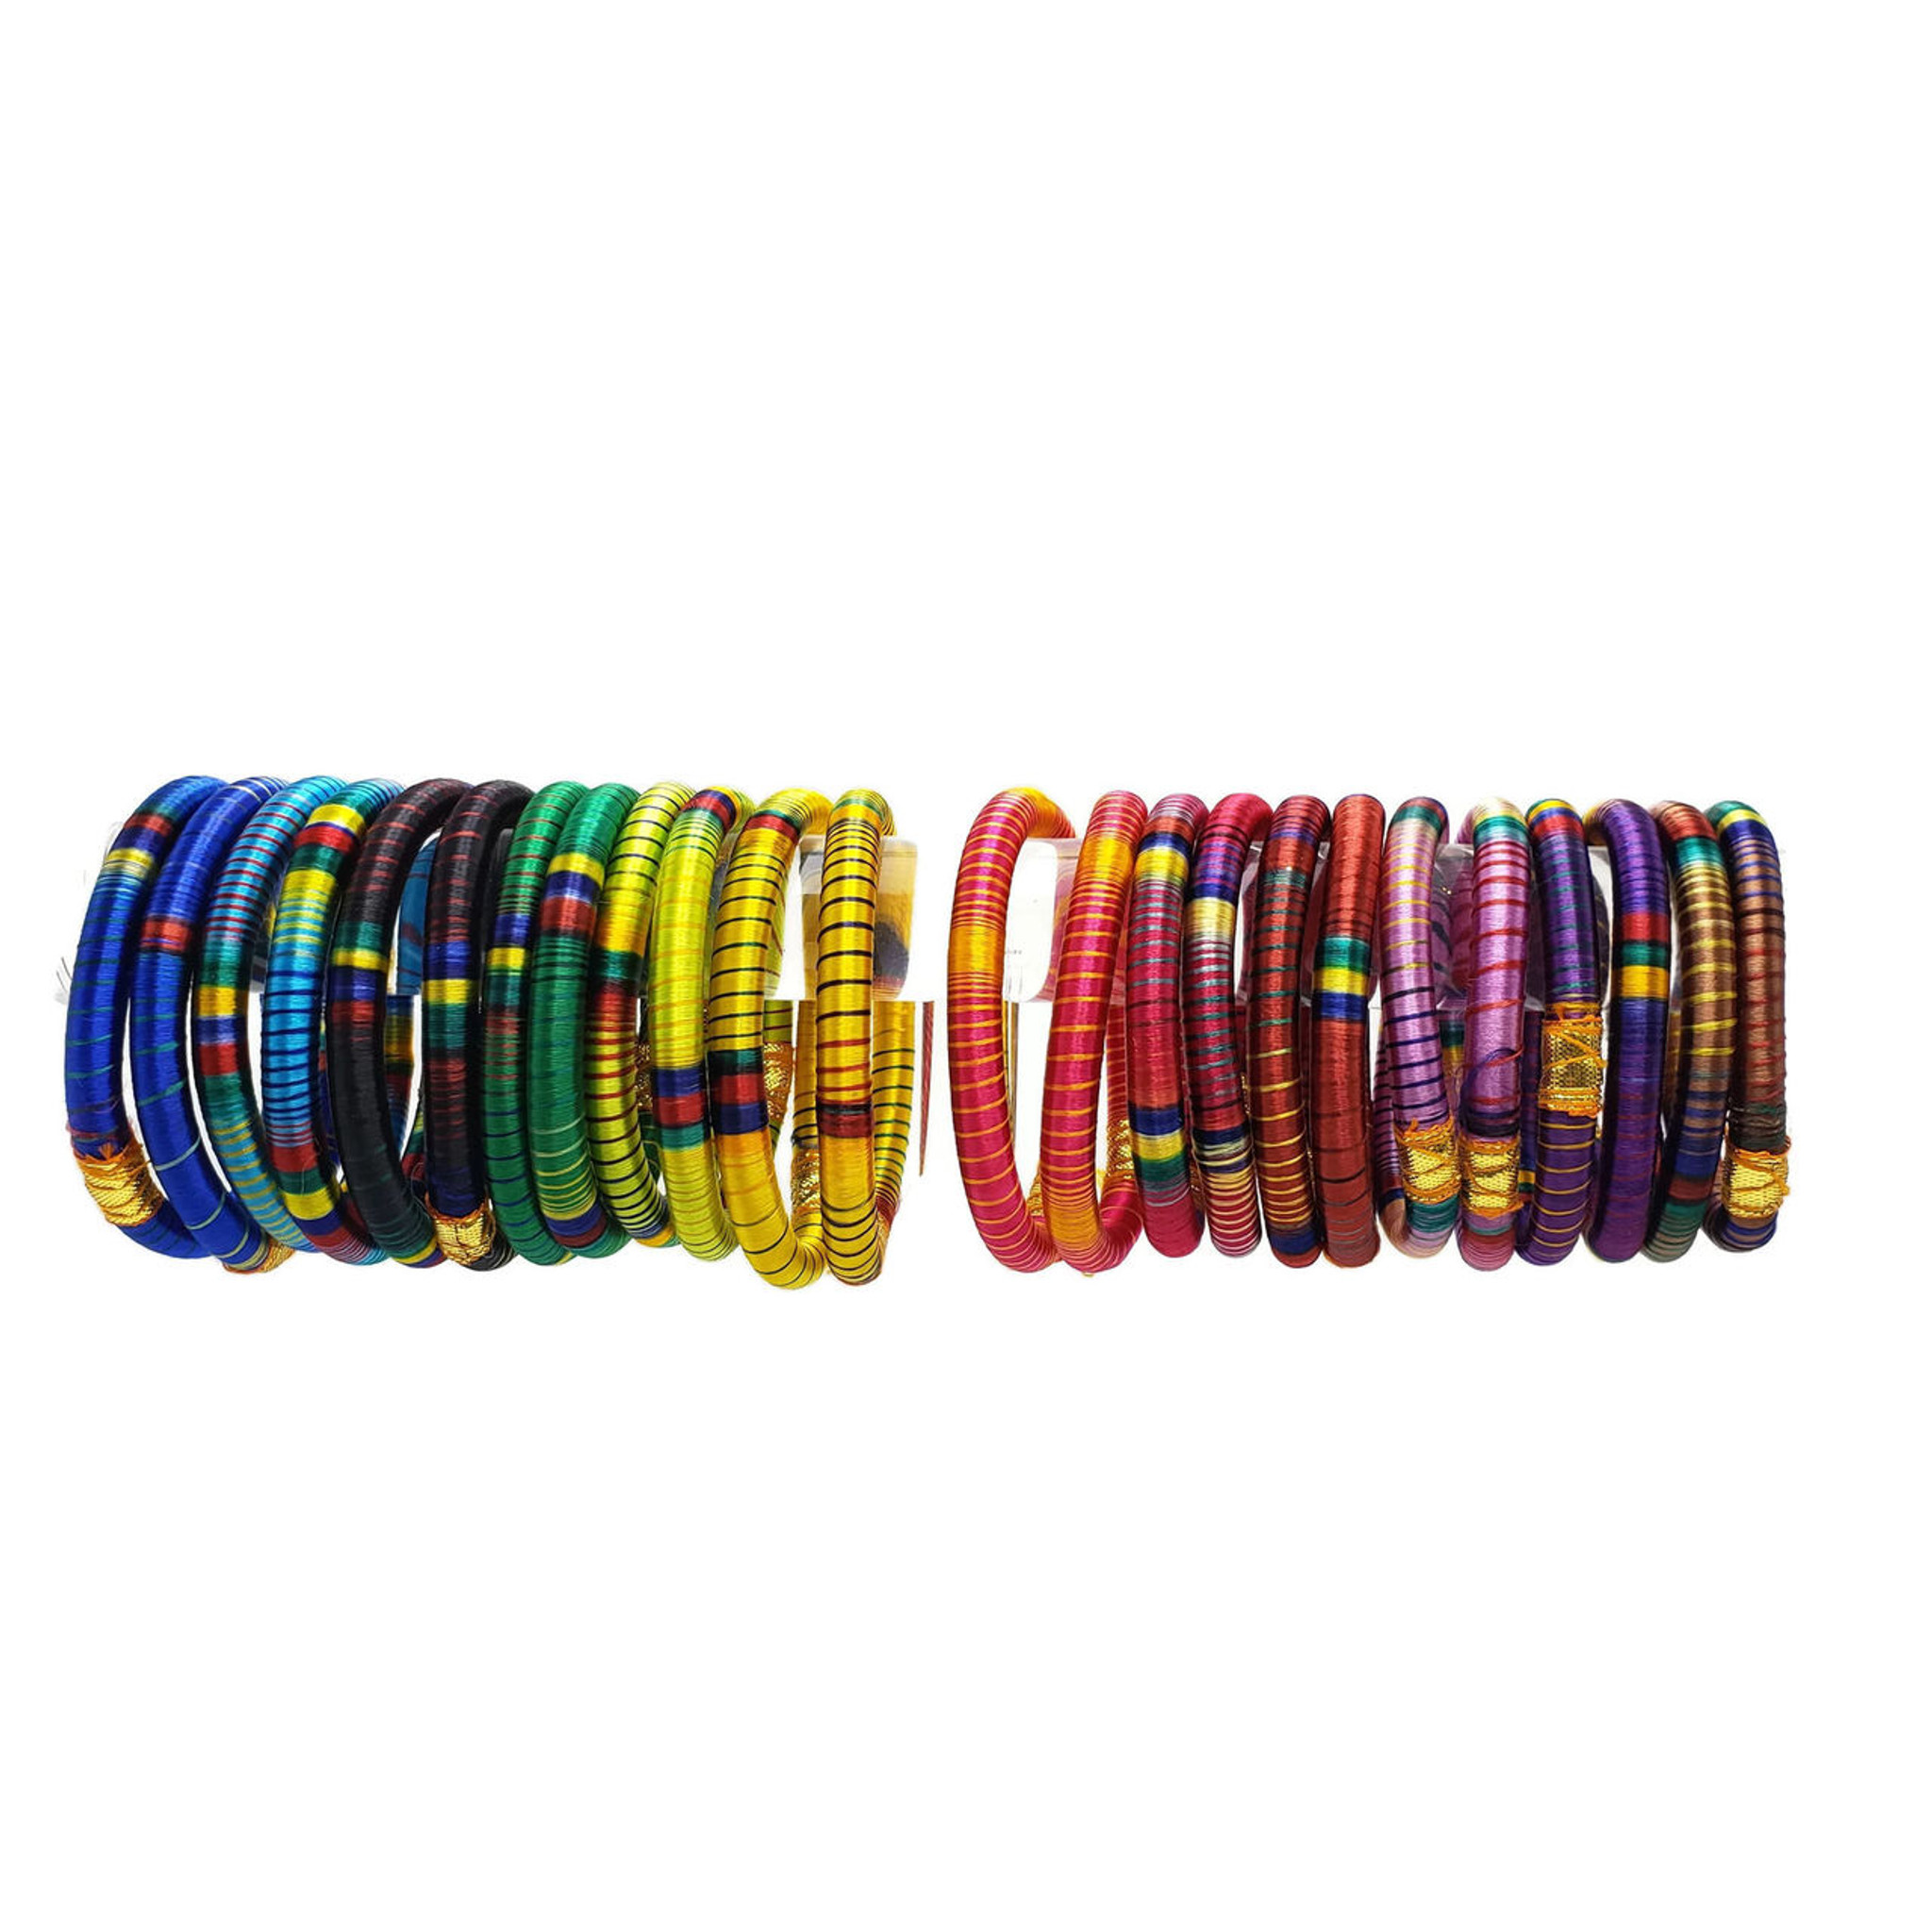 Bhavna Silk Threaded Bangles Set - Multi Color Set of 24